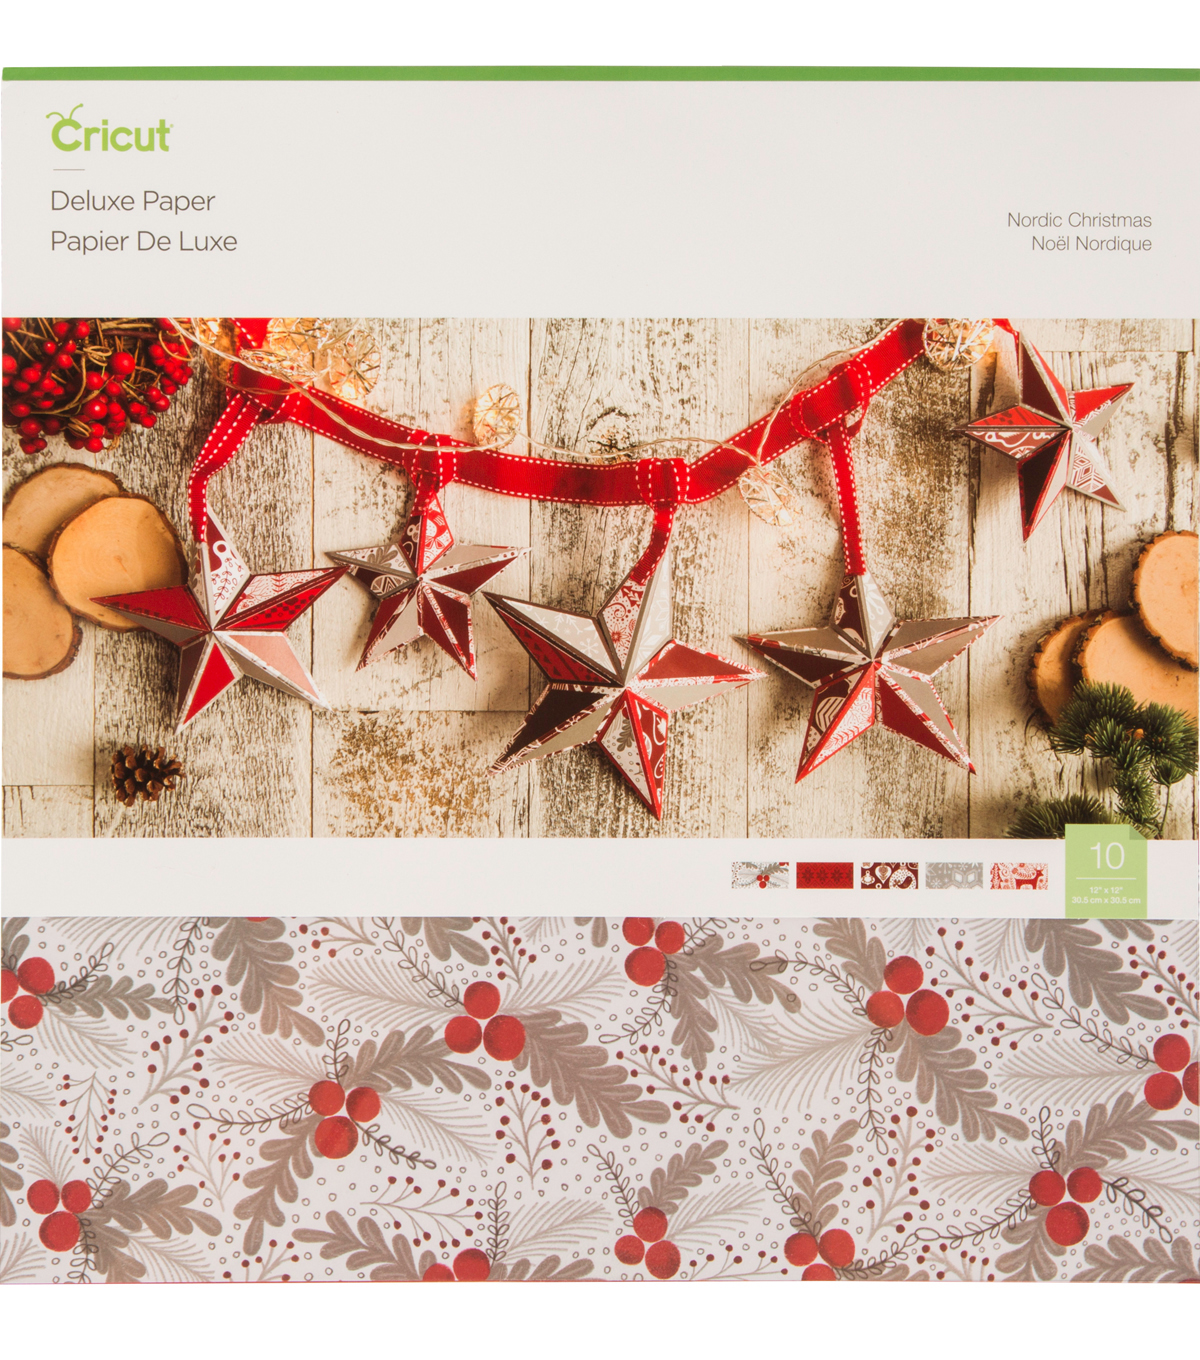 cricut deluxe paper nordic christmas - Nordic Christmas